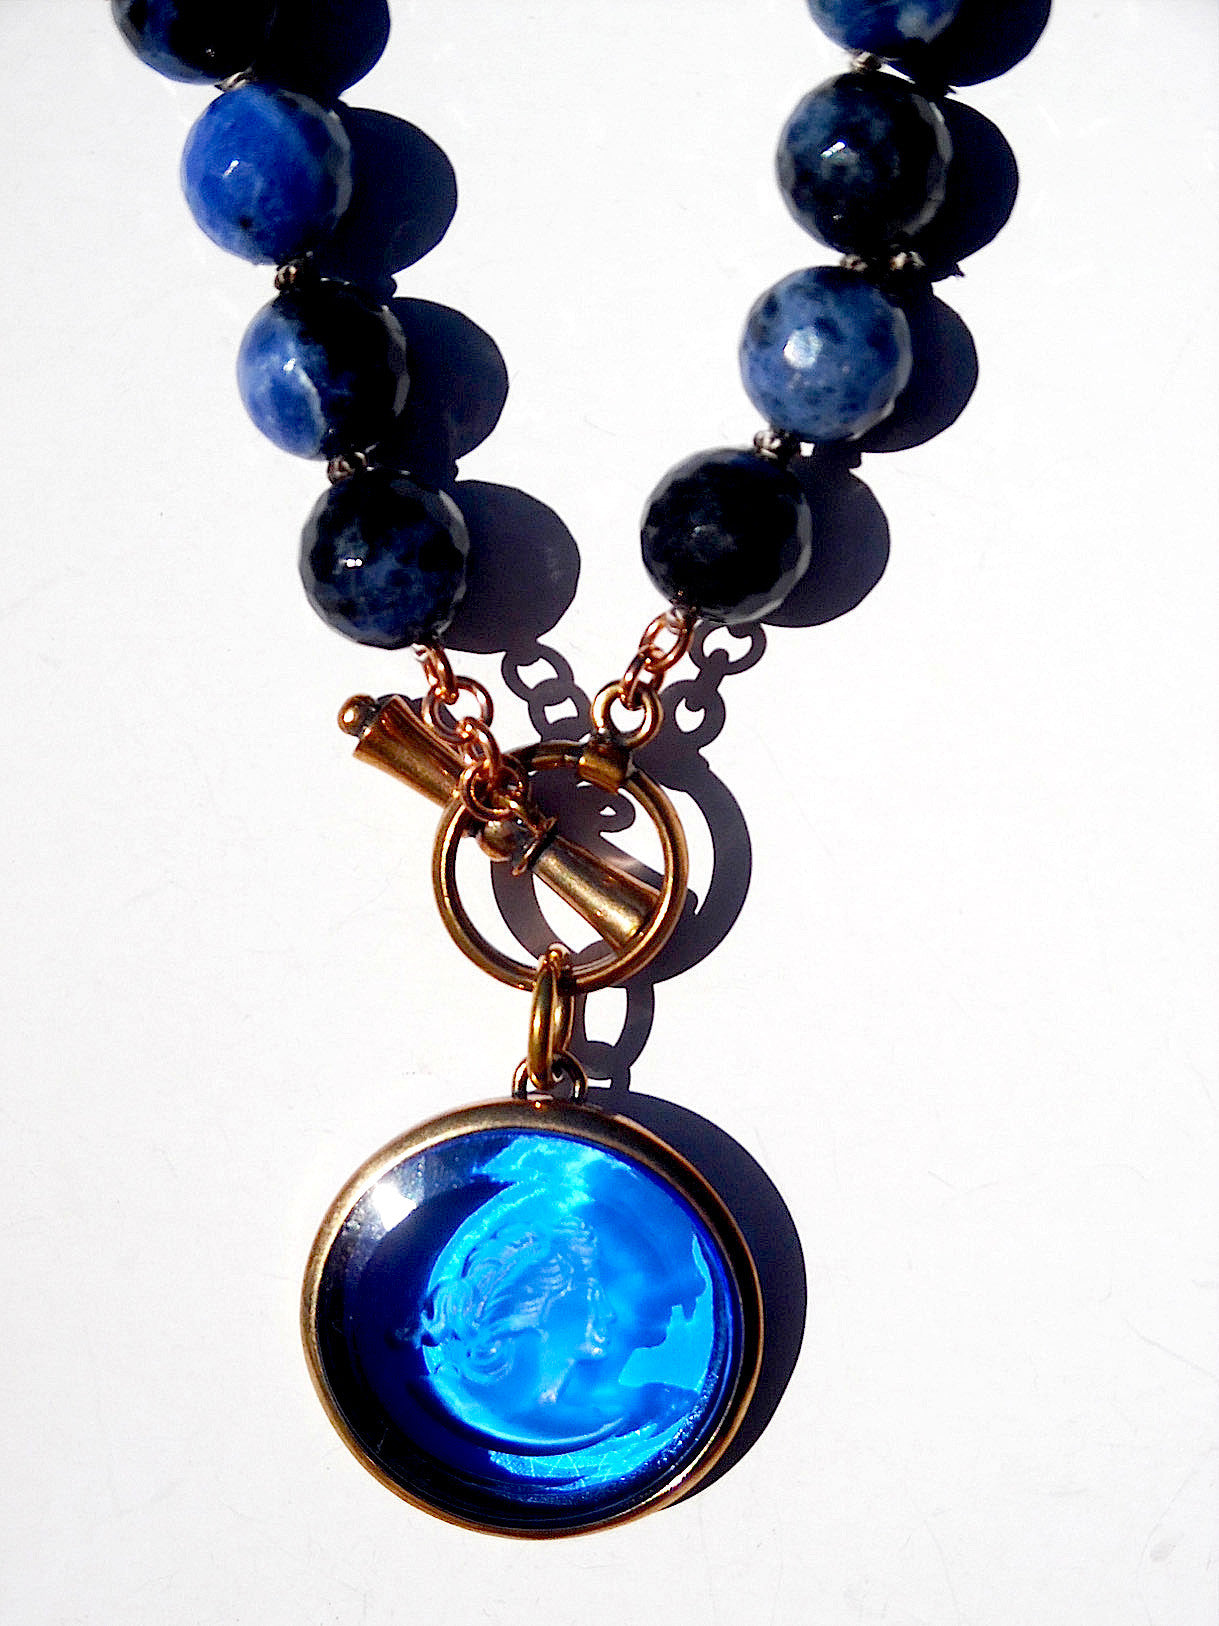 Necklace Intaglio On Faceted Glass Beads